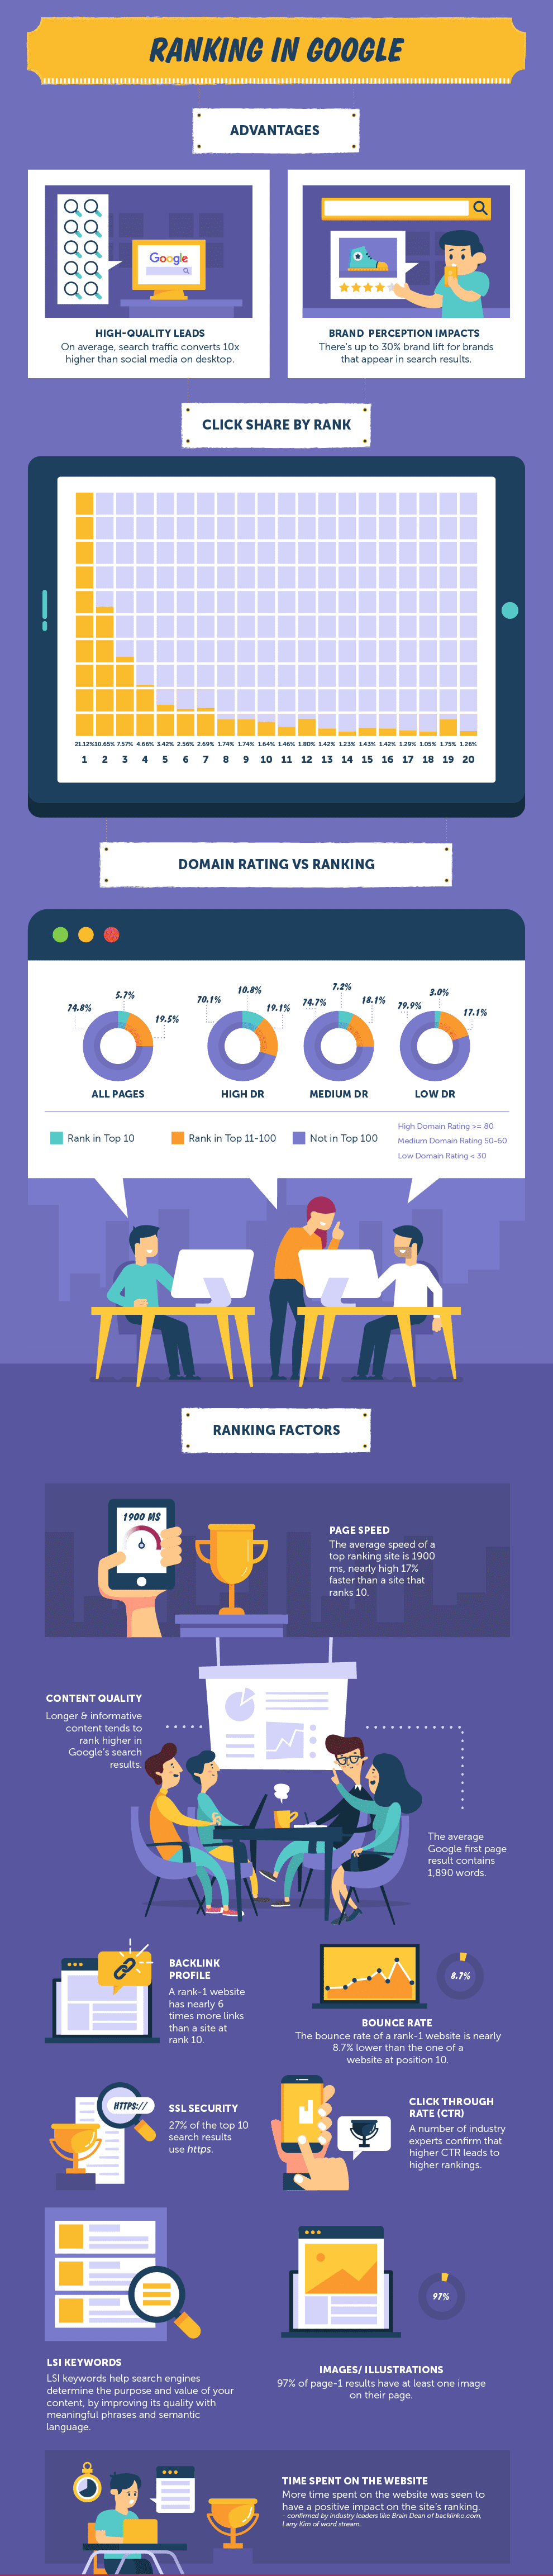 SEO - Ranking in Google Infographic